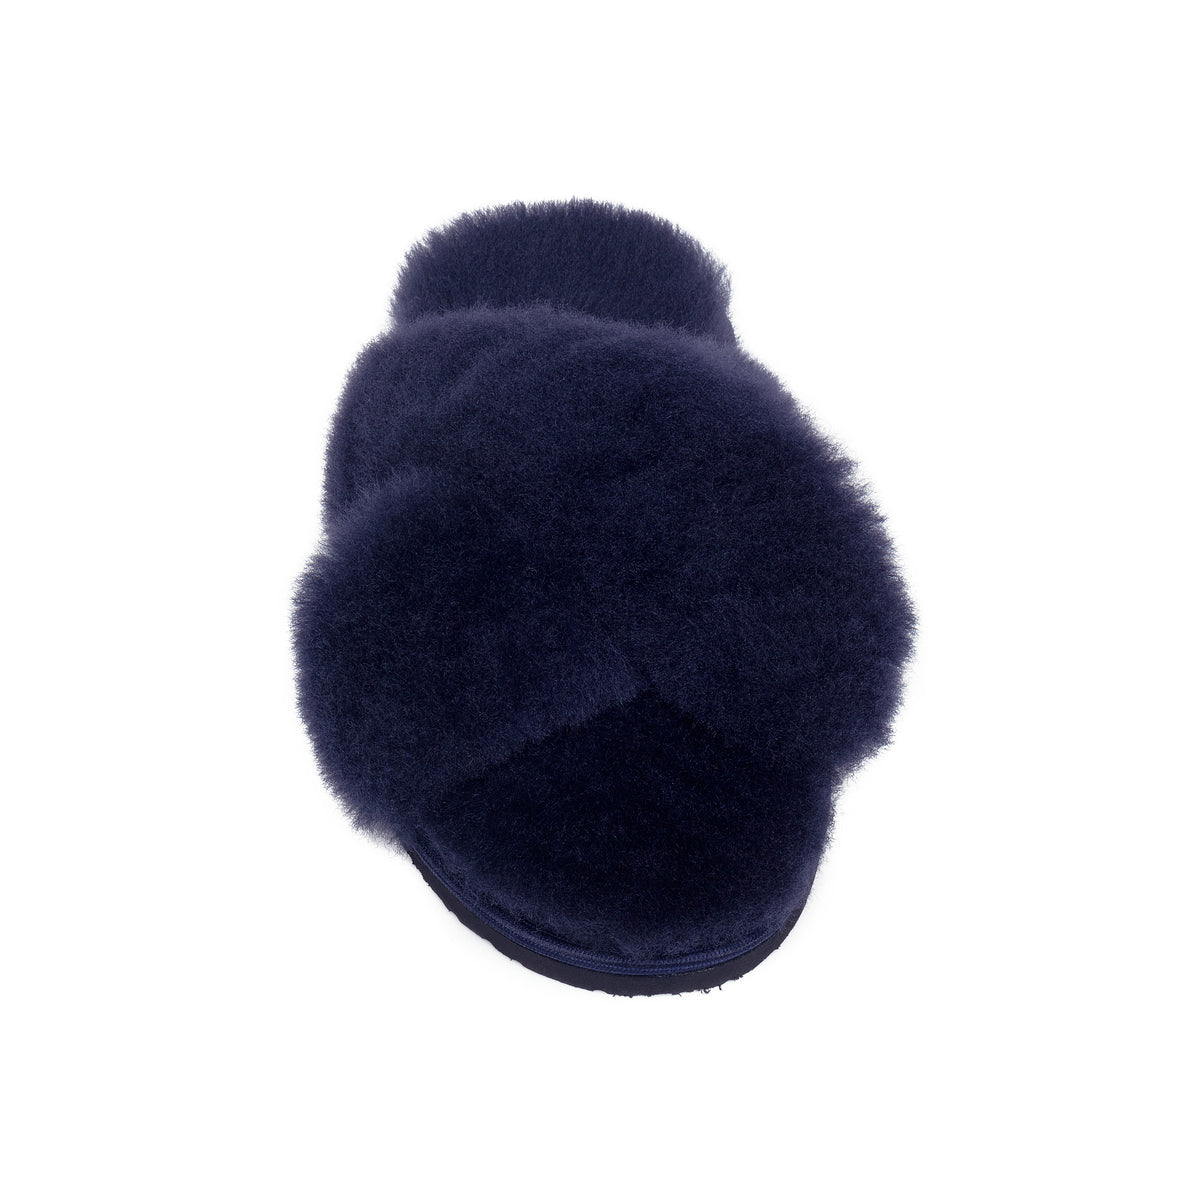 Sula Sheepskin Cross Slider Slippers - Midnight Navy